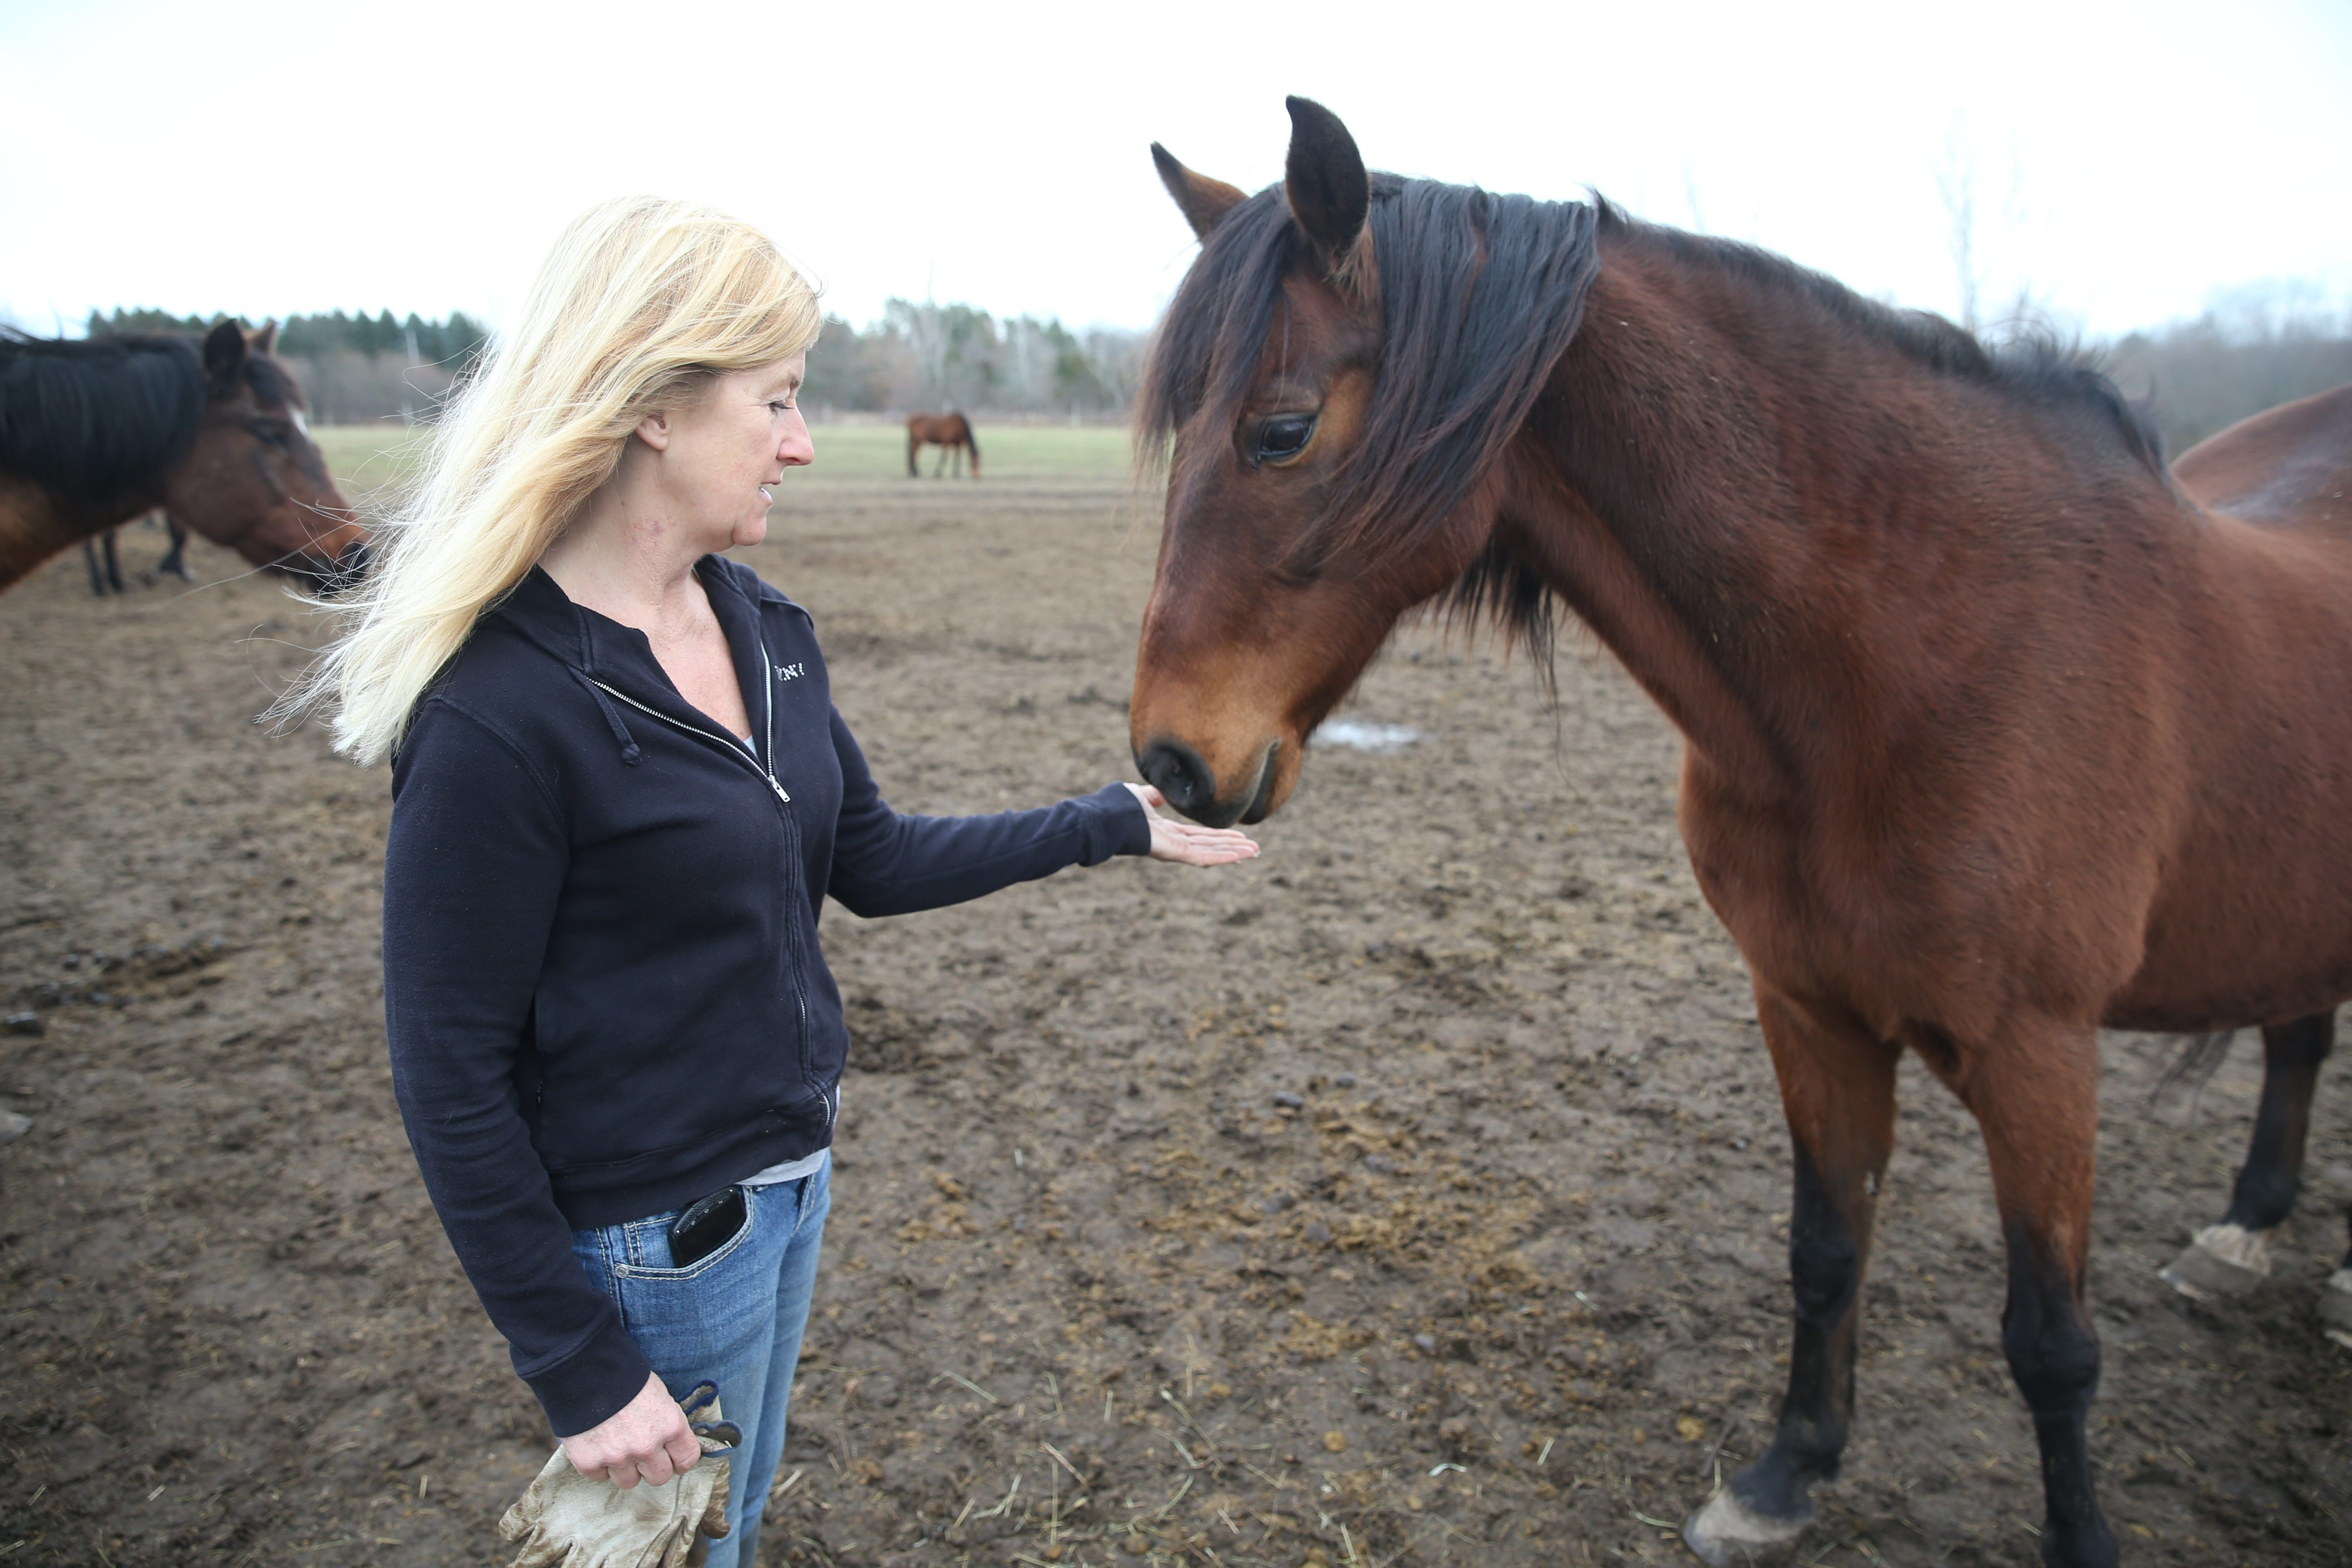 """Marie Bennett, who has been caring for Beth Hoskins' horses at Foxhunt Stables in Lockport since August, is concerned about the welfare of the animals. """"I cried. I was so upset that I called the SPCA attorney crying,"""" Bennett said Sunday.  (Sharon Cantillon/Buffalo News)"""